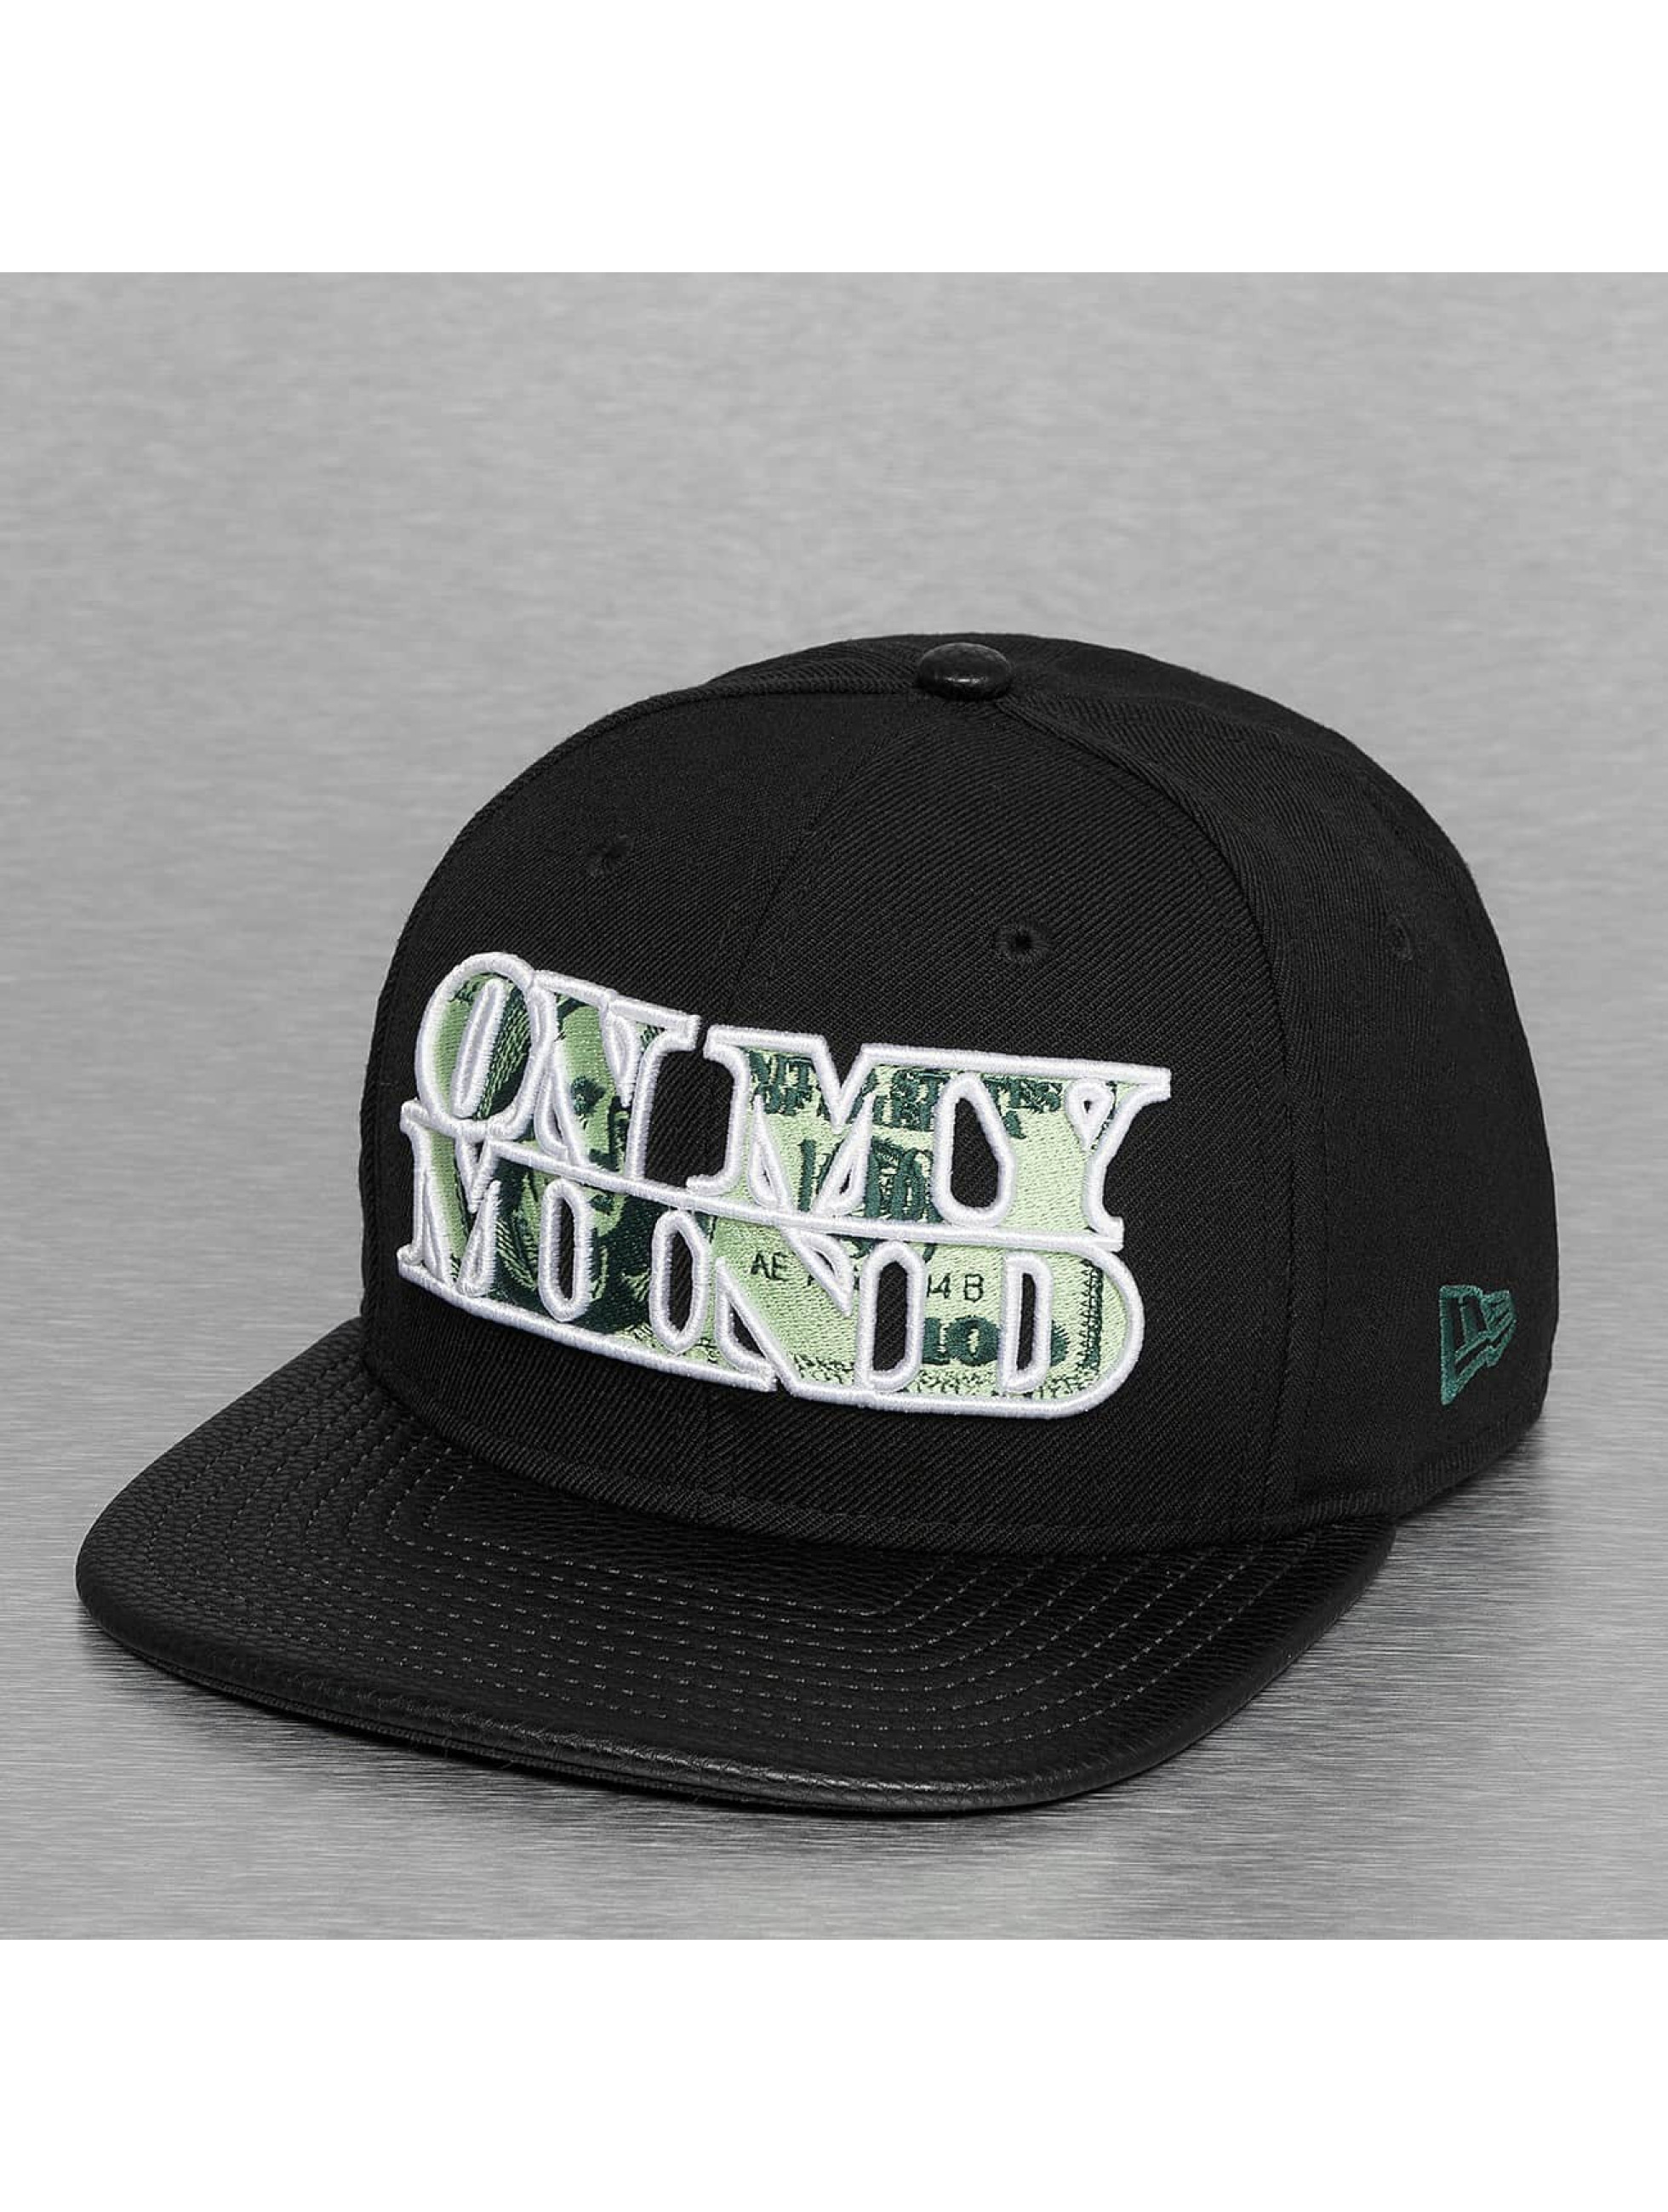 New Era Snapback OnMyMind 9Fifty èierna